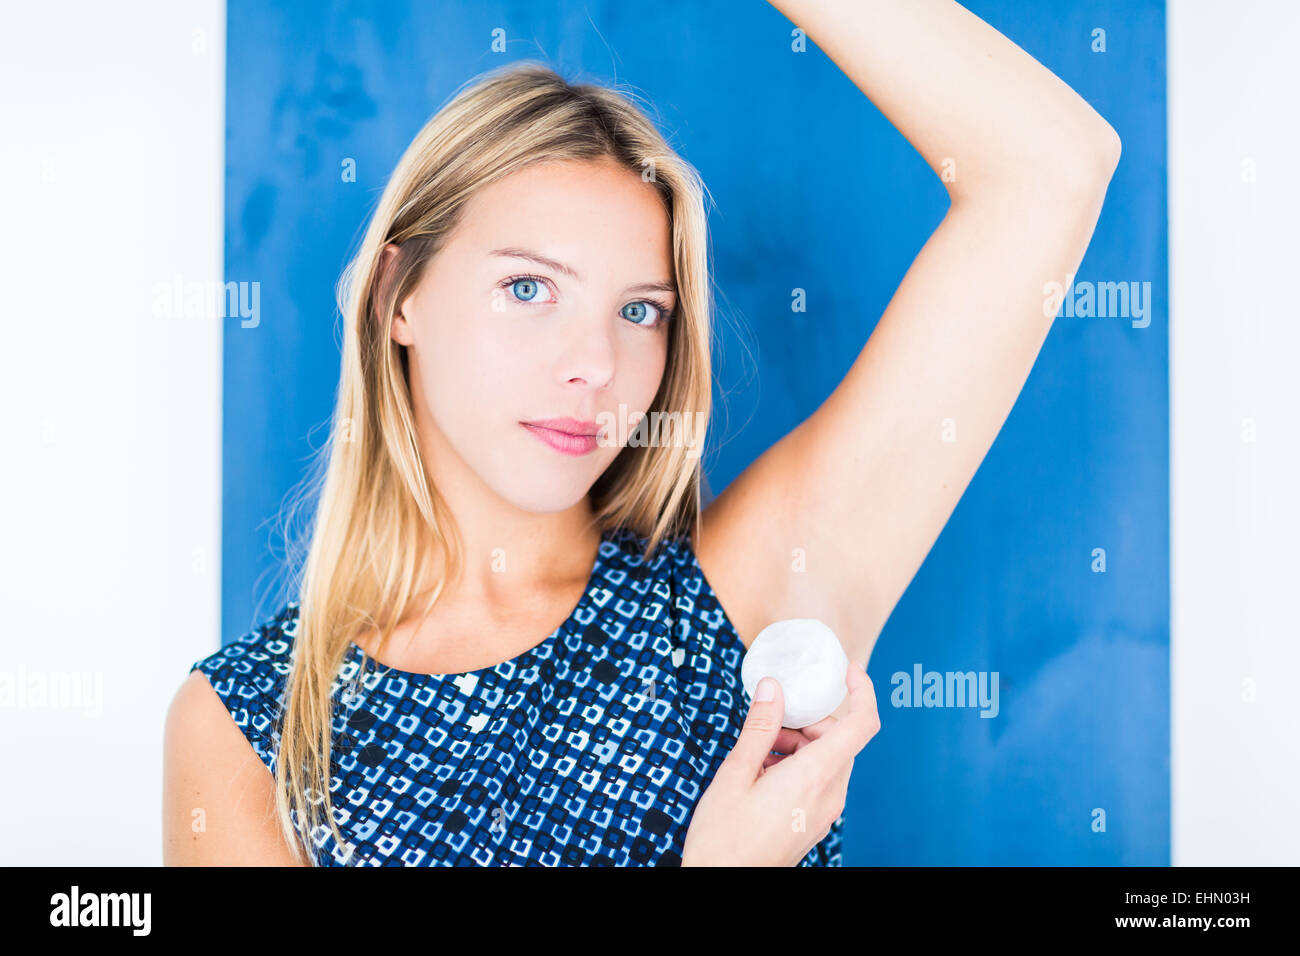 Woman using alumstone as deodorant. - Stock Image